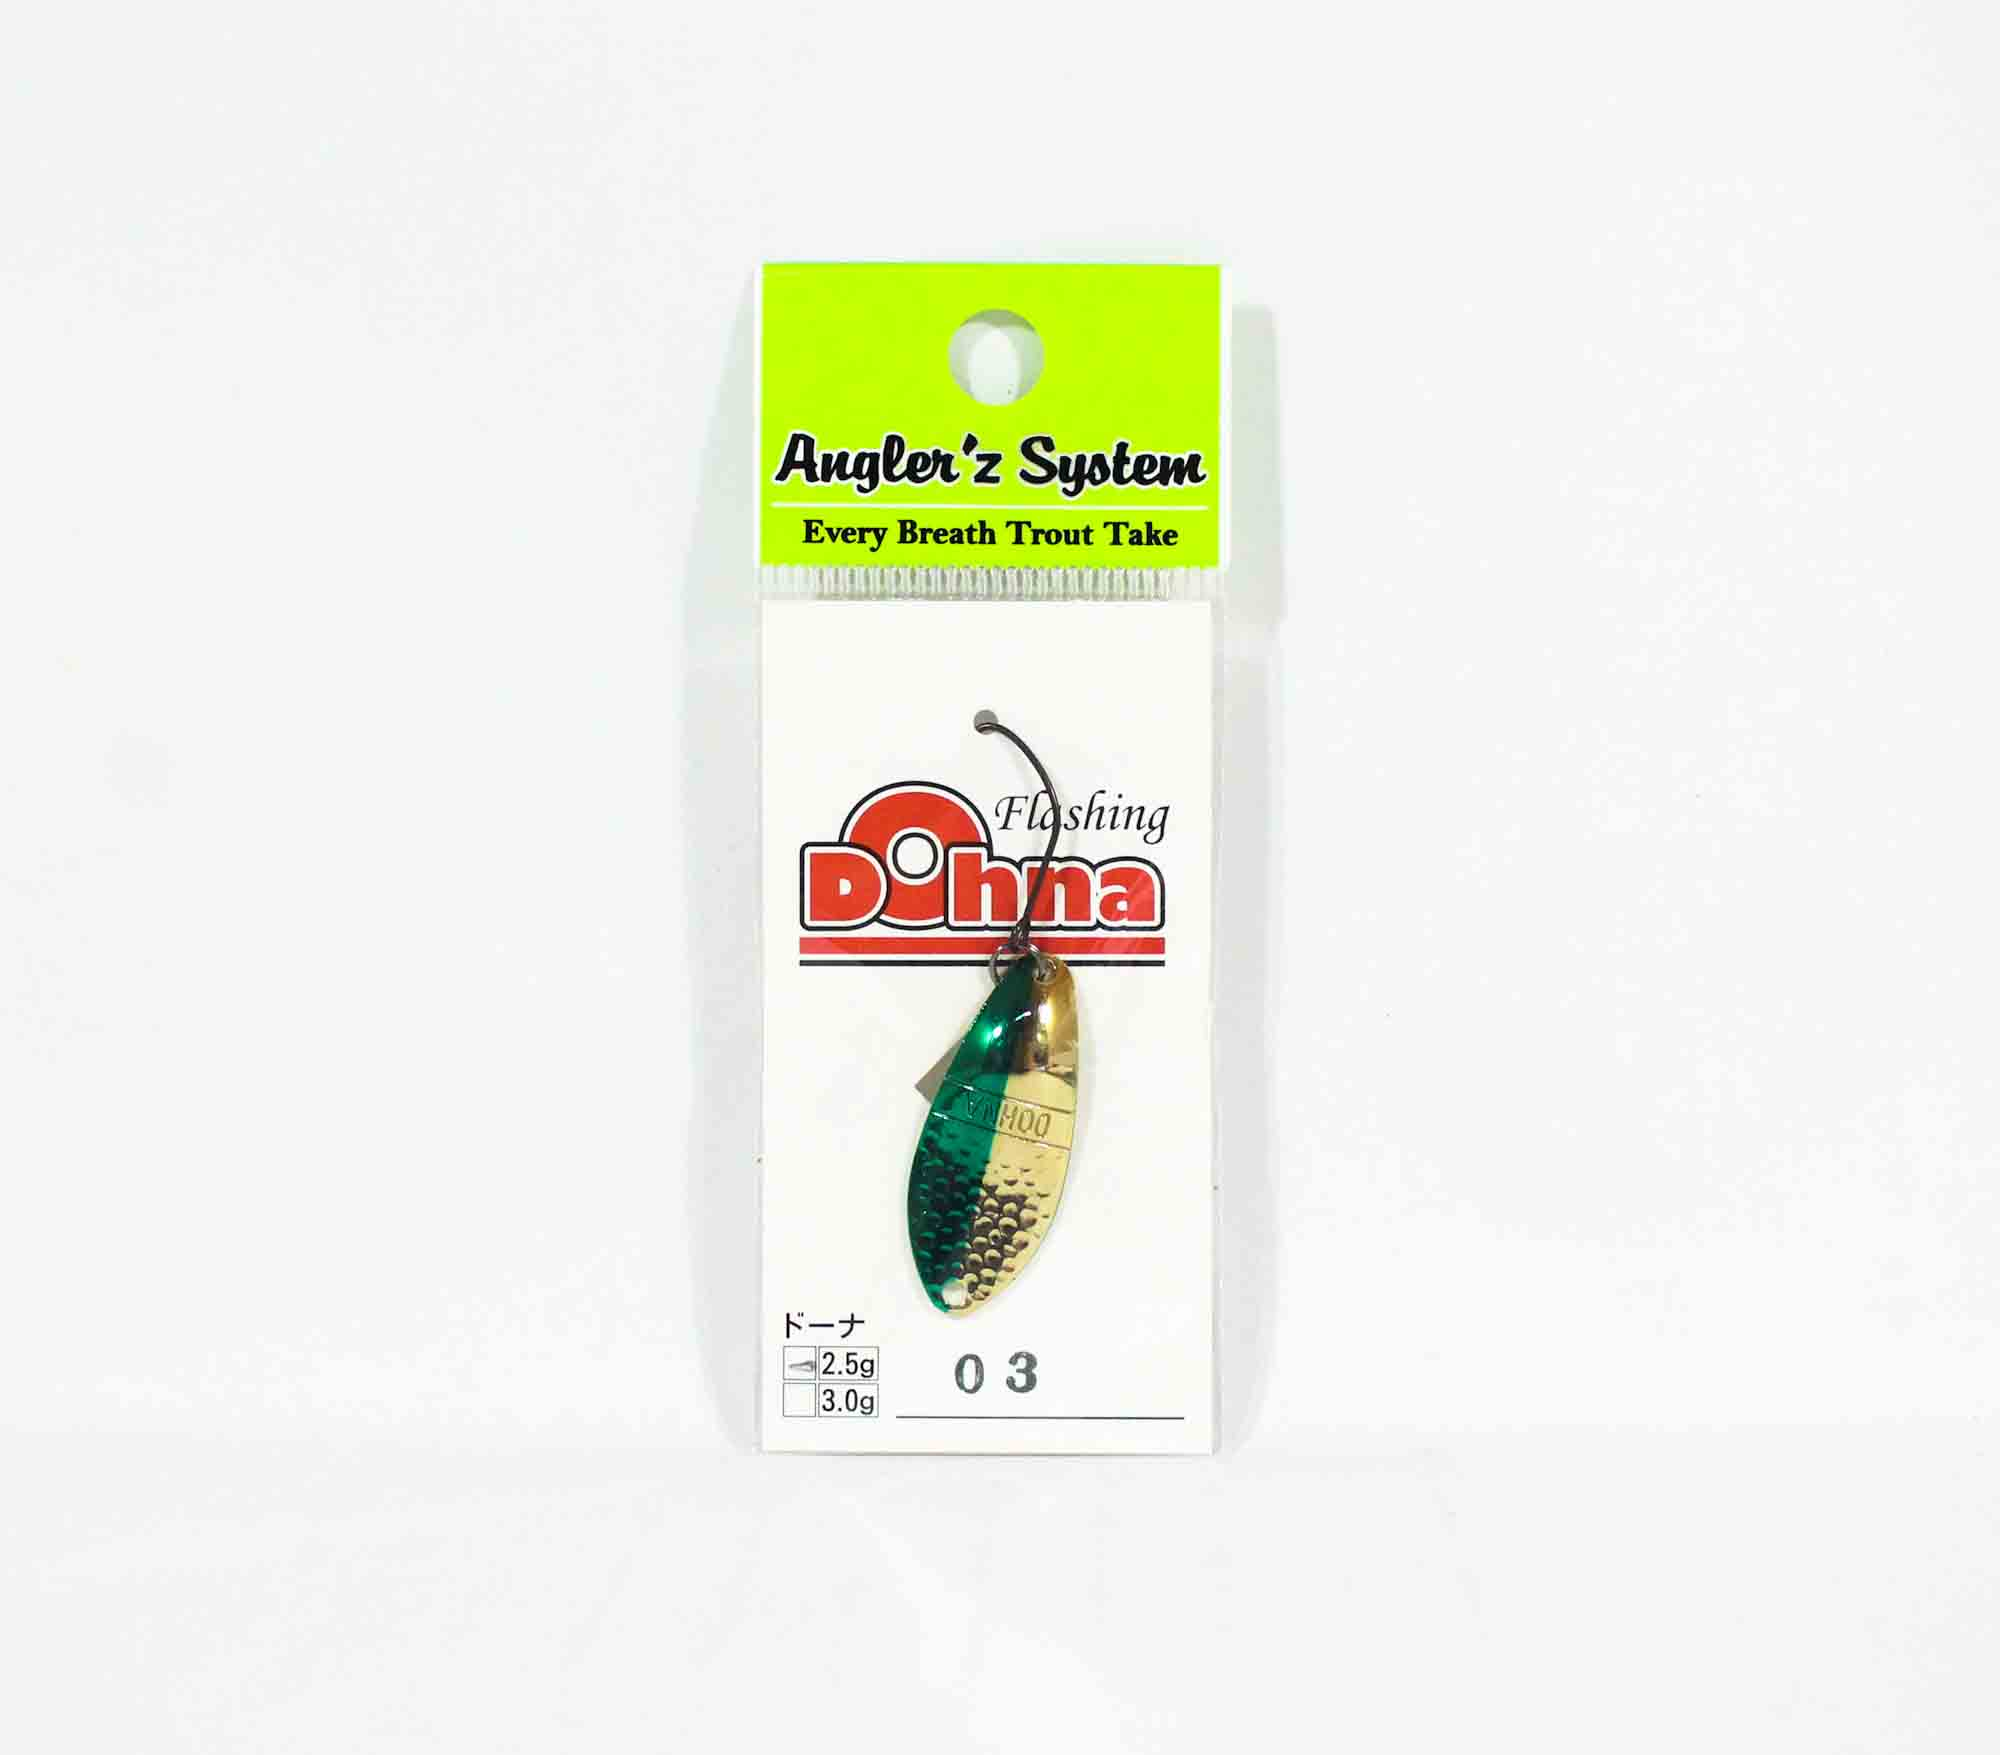 Anglers System Antem Dohna 2.5 grams Spoon Sinking Lure 03 (2691)